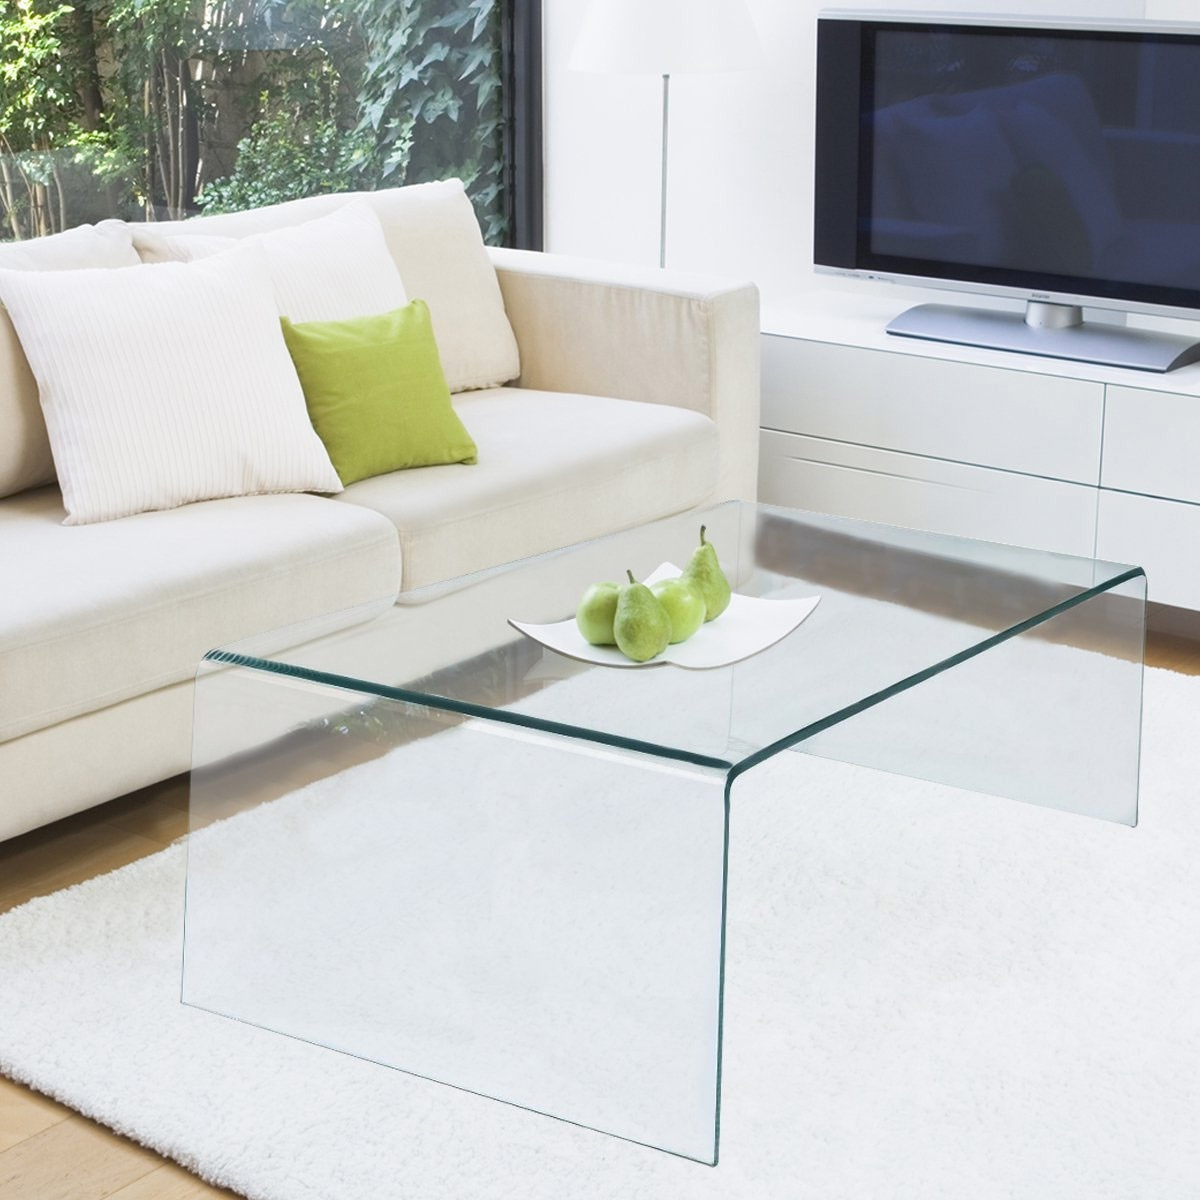 The Best Glass Coffee Tables Under $200 Intended For Recent Contemporary Curves Coffee Tables (View 17 of 20)